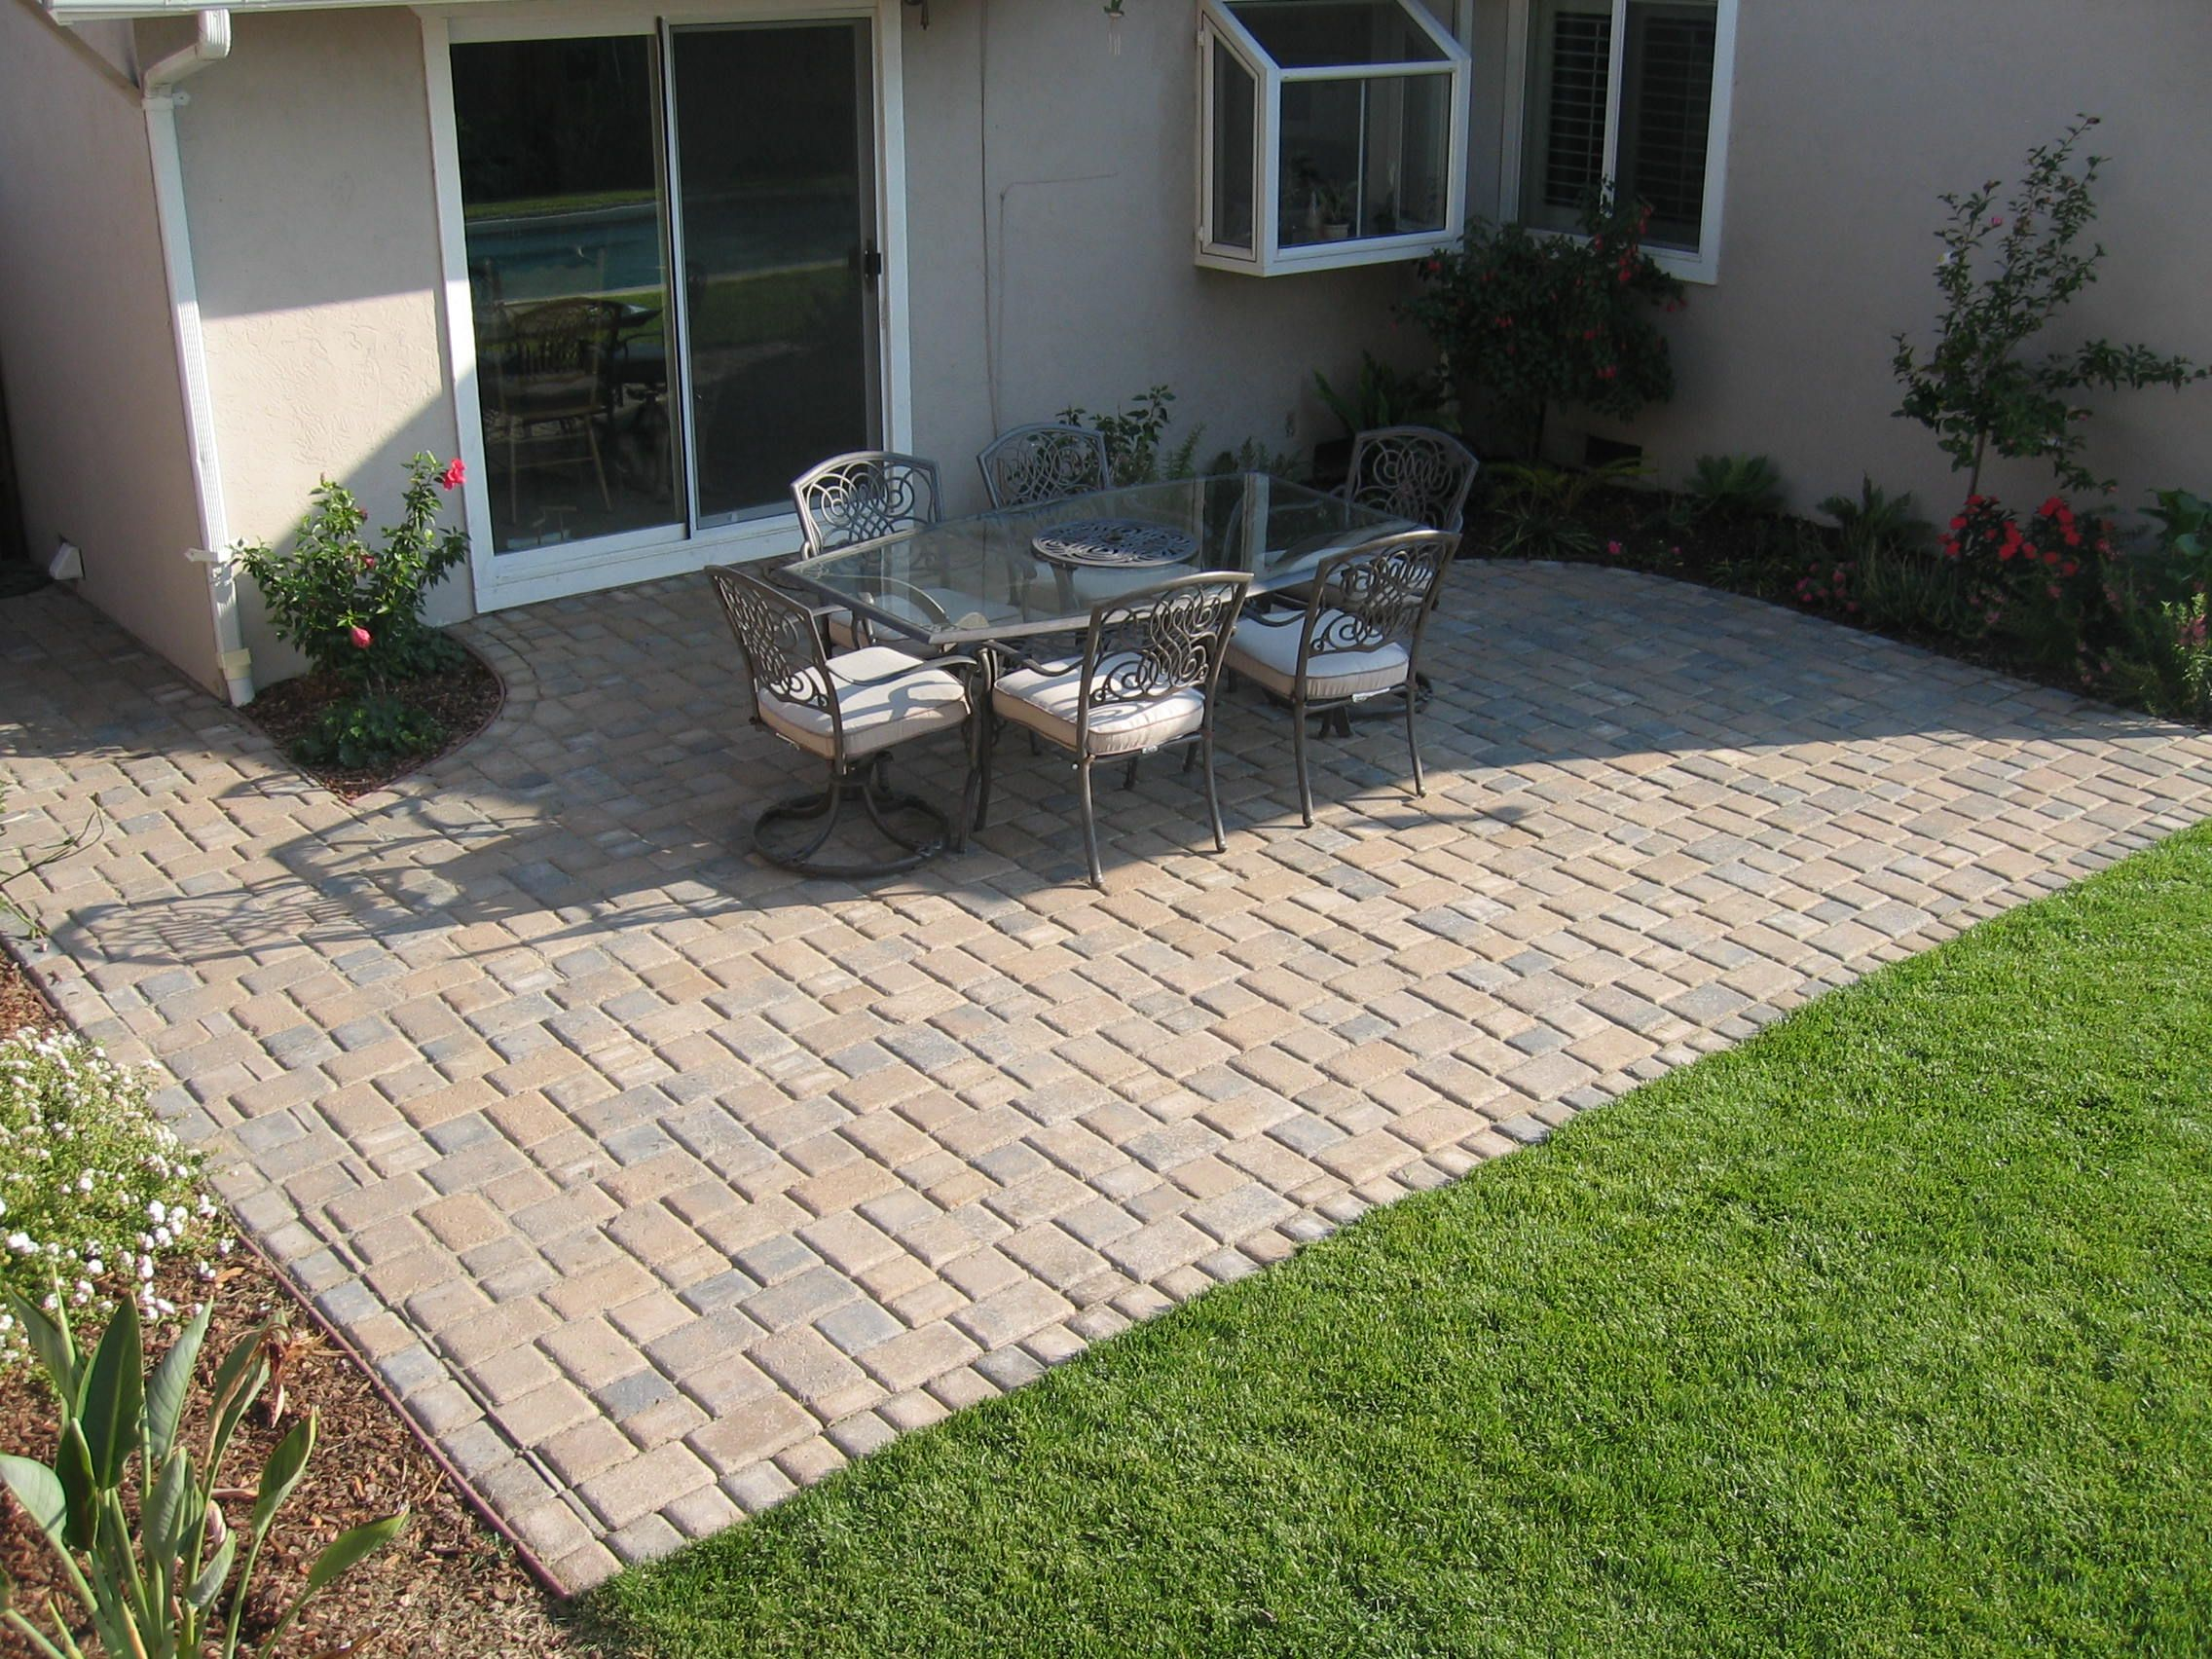 driveway pavers lowes diy paving on size patio cheap design depot budget backyard full patterns designs ideas a concrete stone home paver of